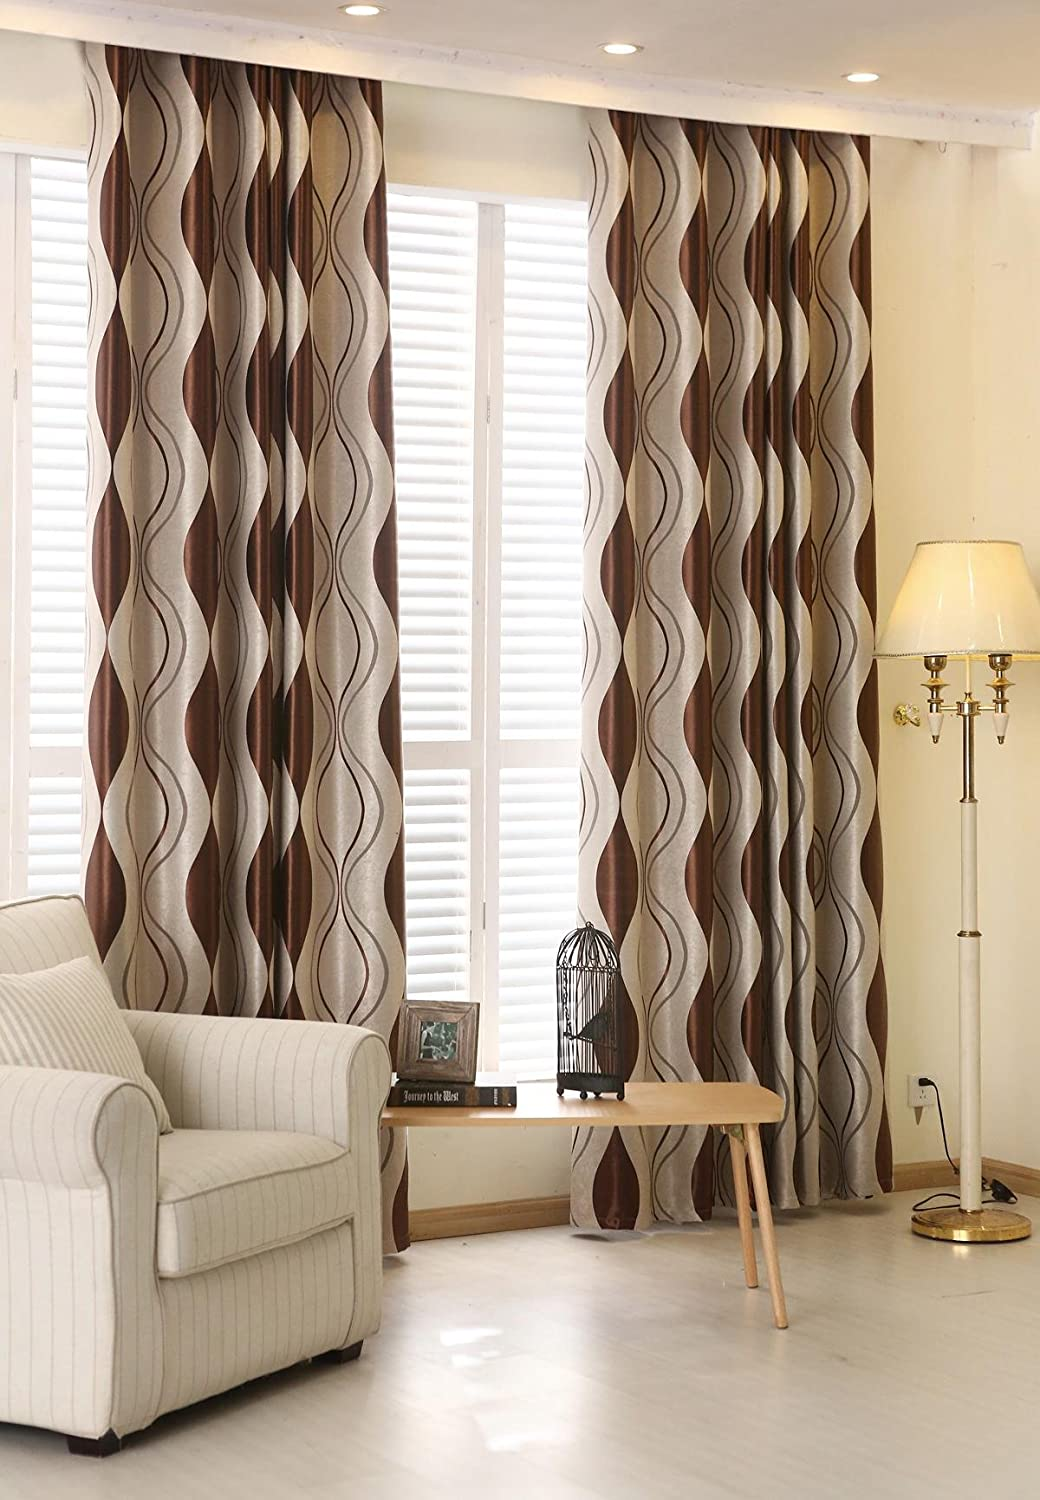 elegant living room curtains. Amazon com  ZWB Elegant and Comfort Heavy Thick Curtains for Living Room Bedroom Grommet Top Blackout Sliding Glass Door Kids 1 Panel W75